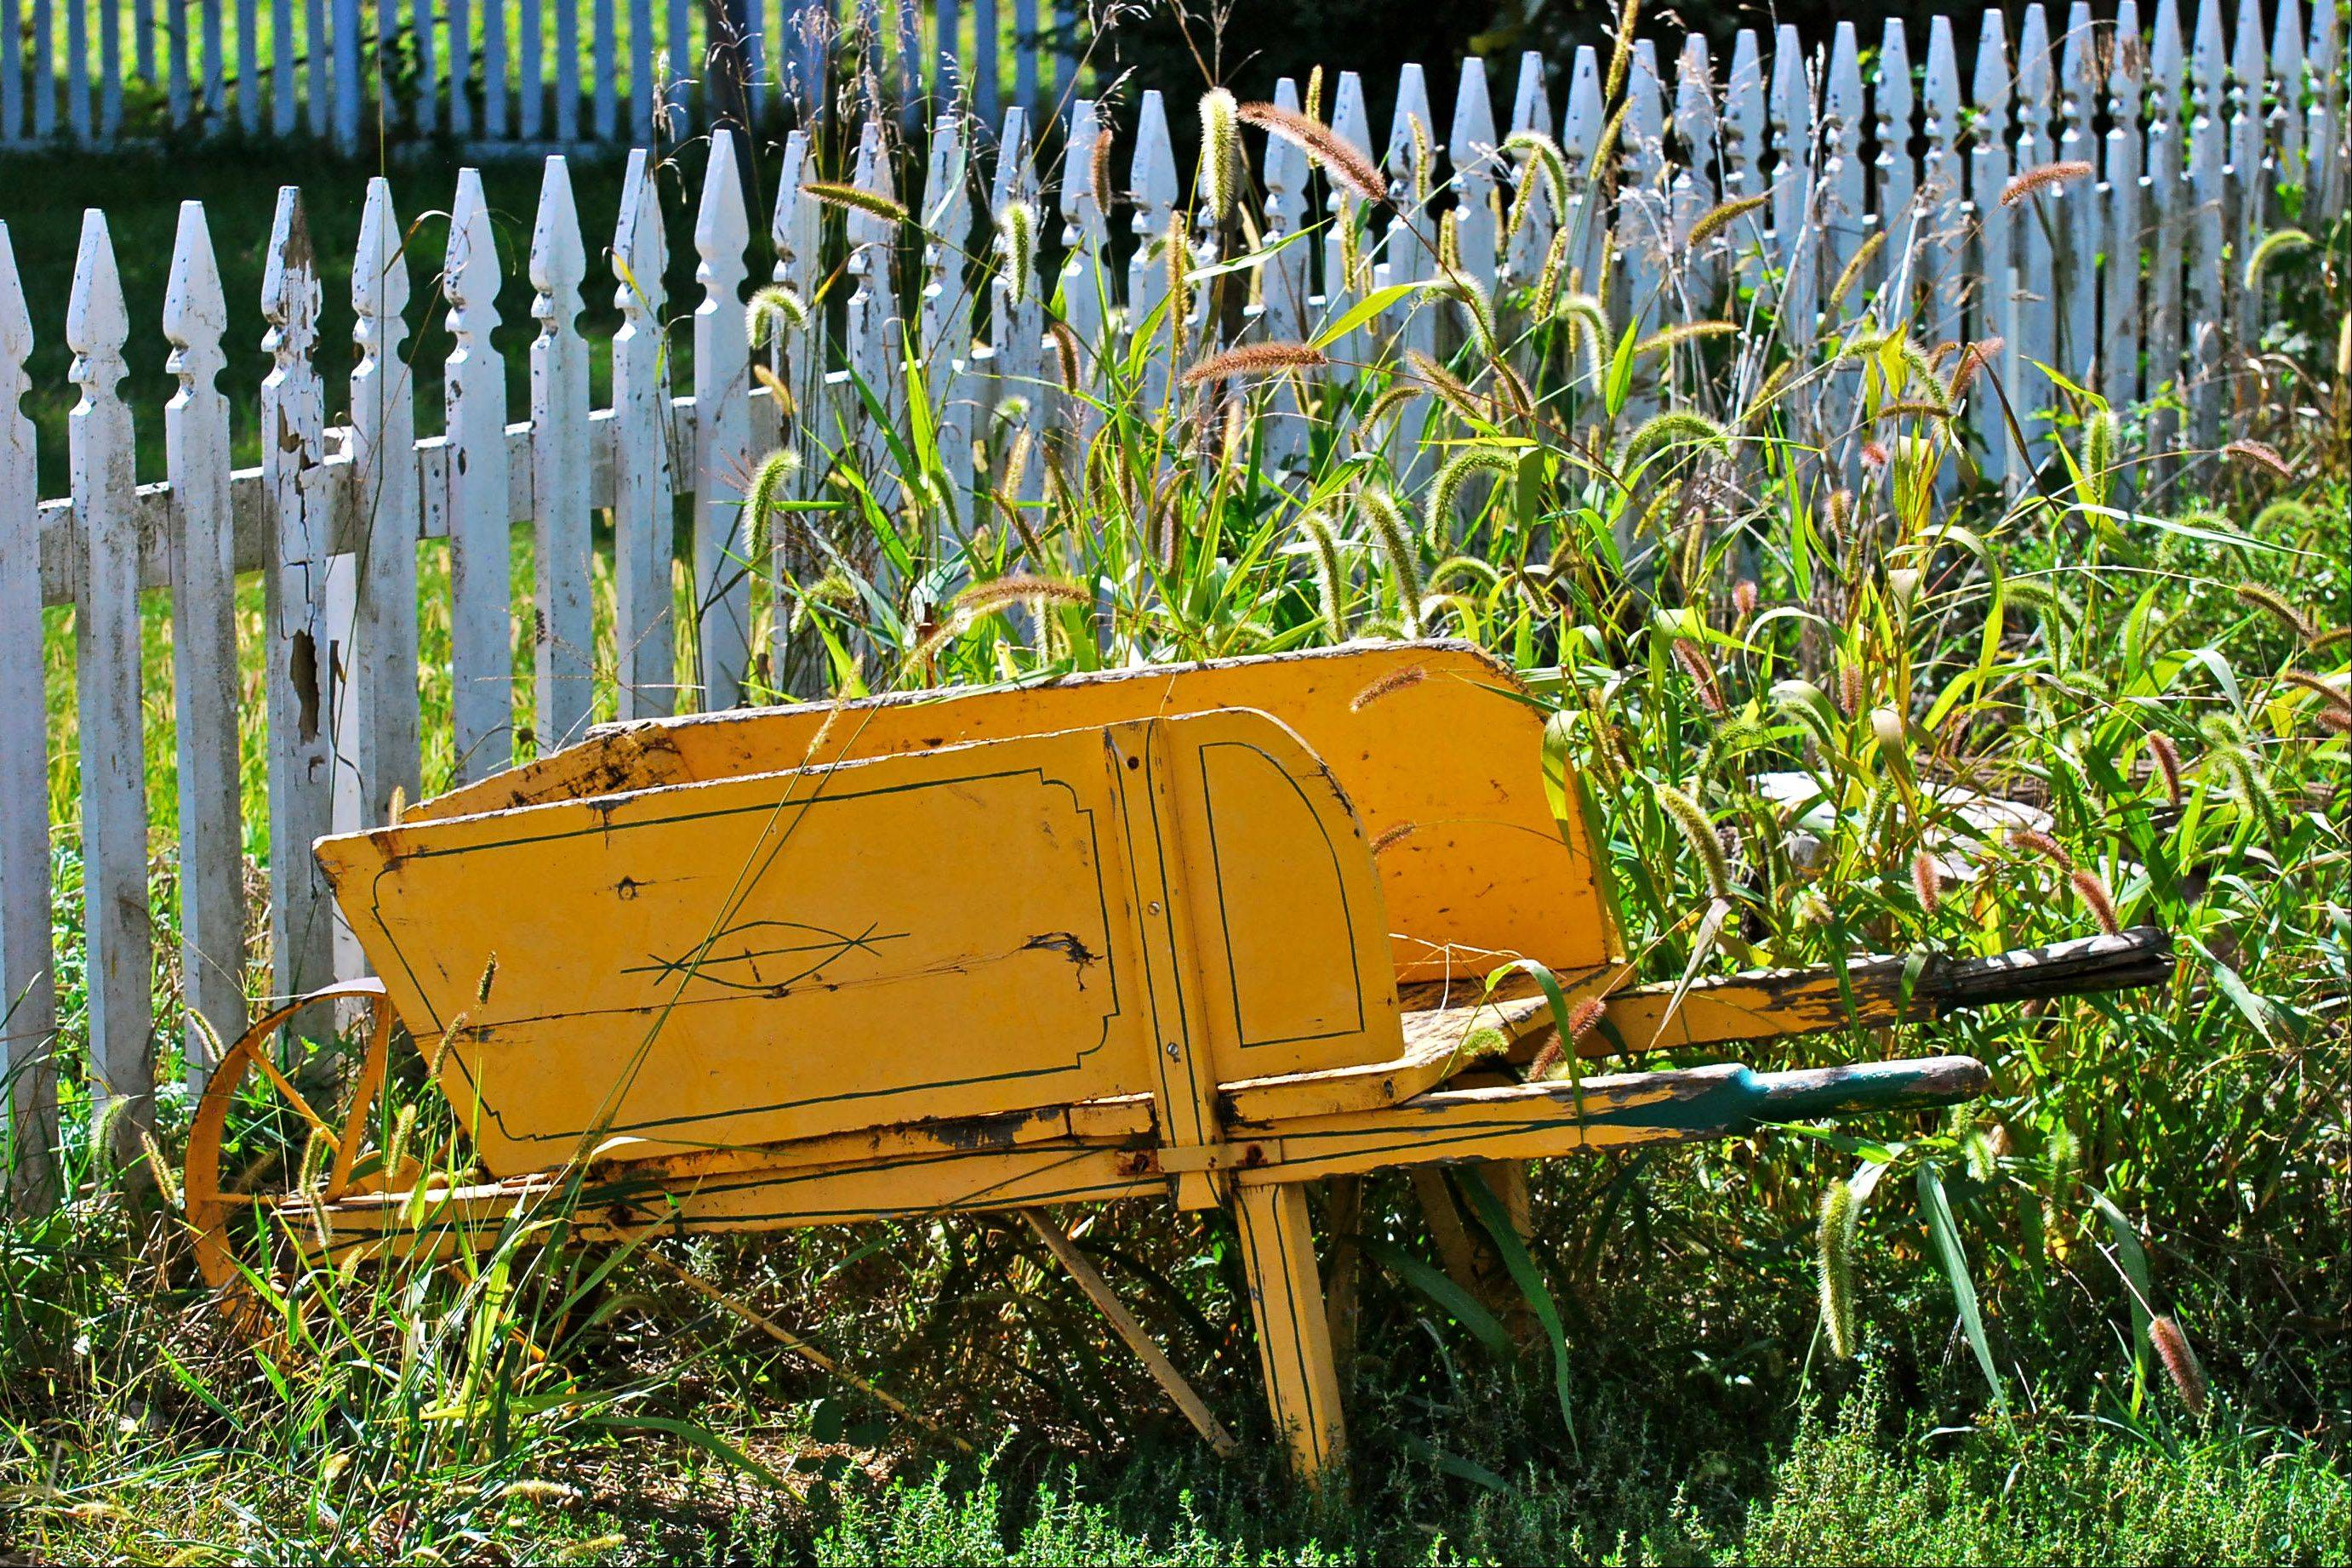 I took this photo at the Living History Farms near Des Moines, Iowa. The fence and wheelbarrow both have seen better days, but together they made an interesting picture.